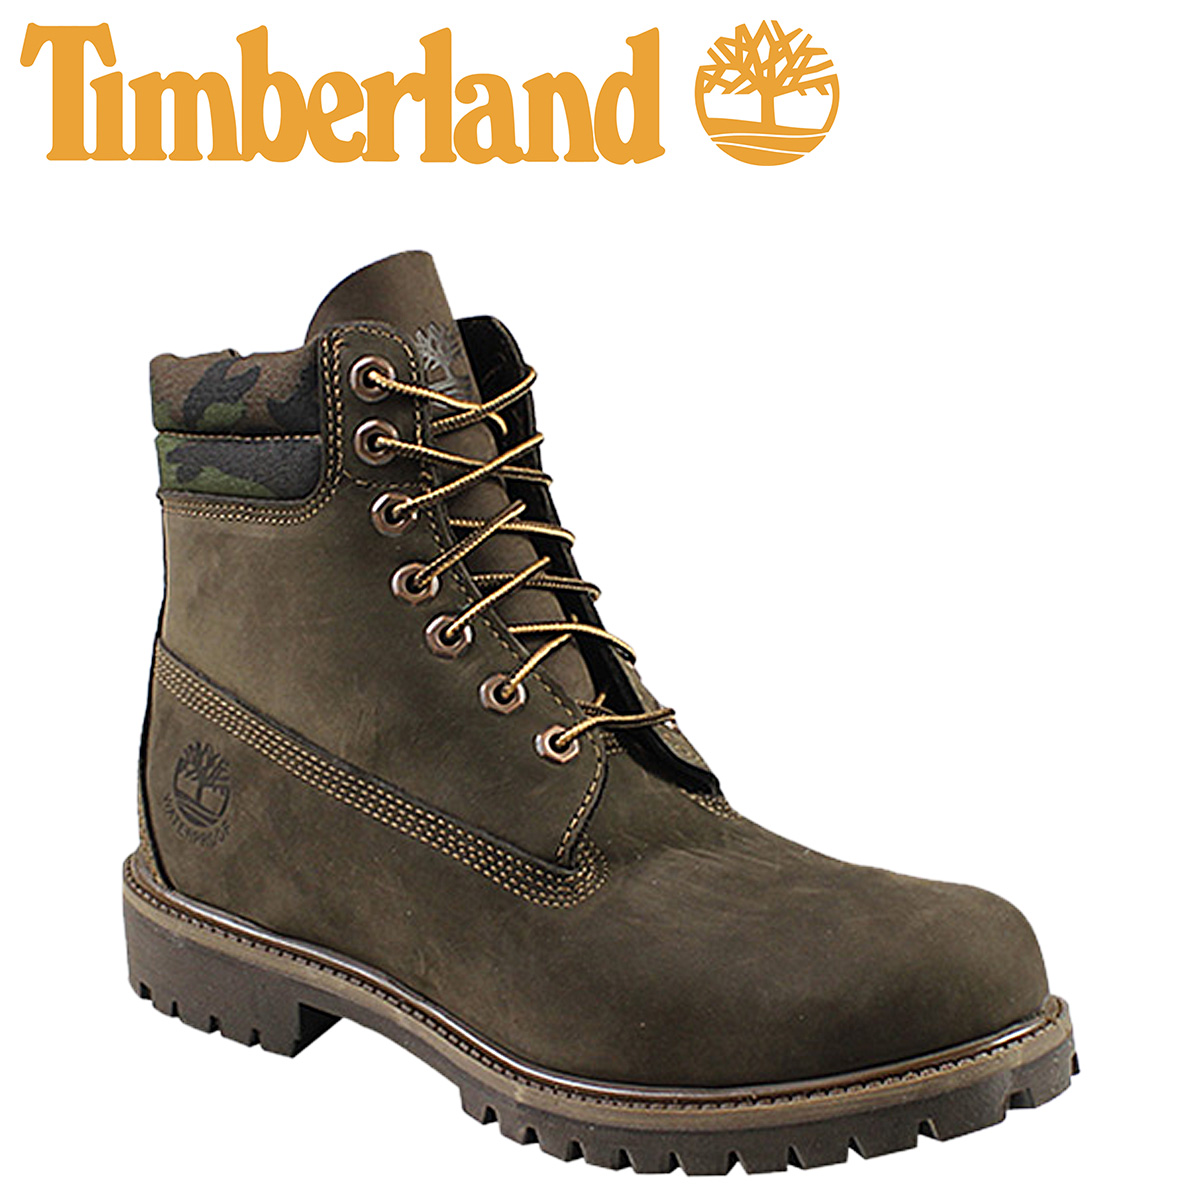 324936a3cc5a9 Timberland Duck Boots Mens - Best Picture Of Boot Imageco.Org